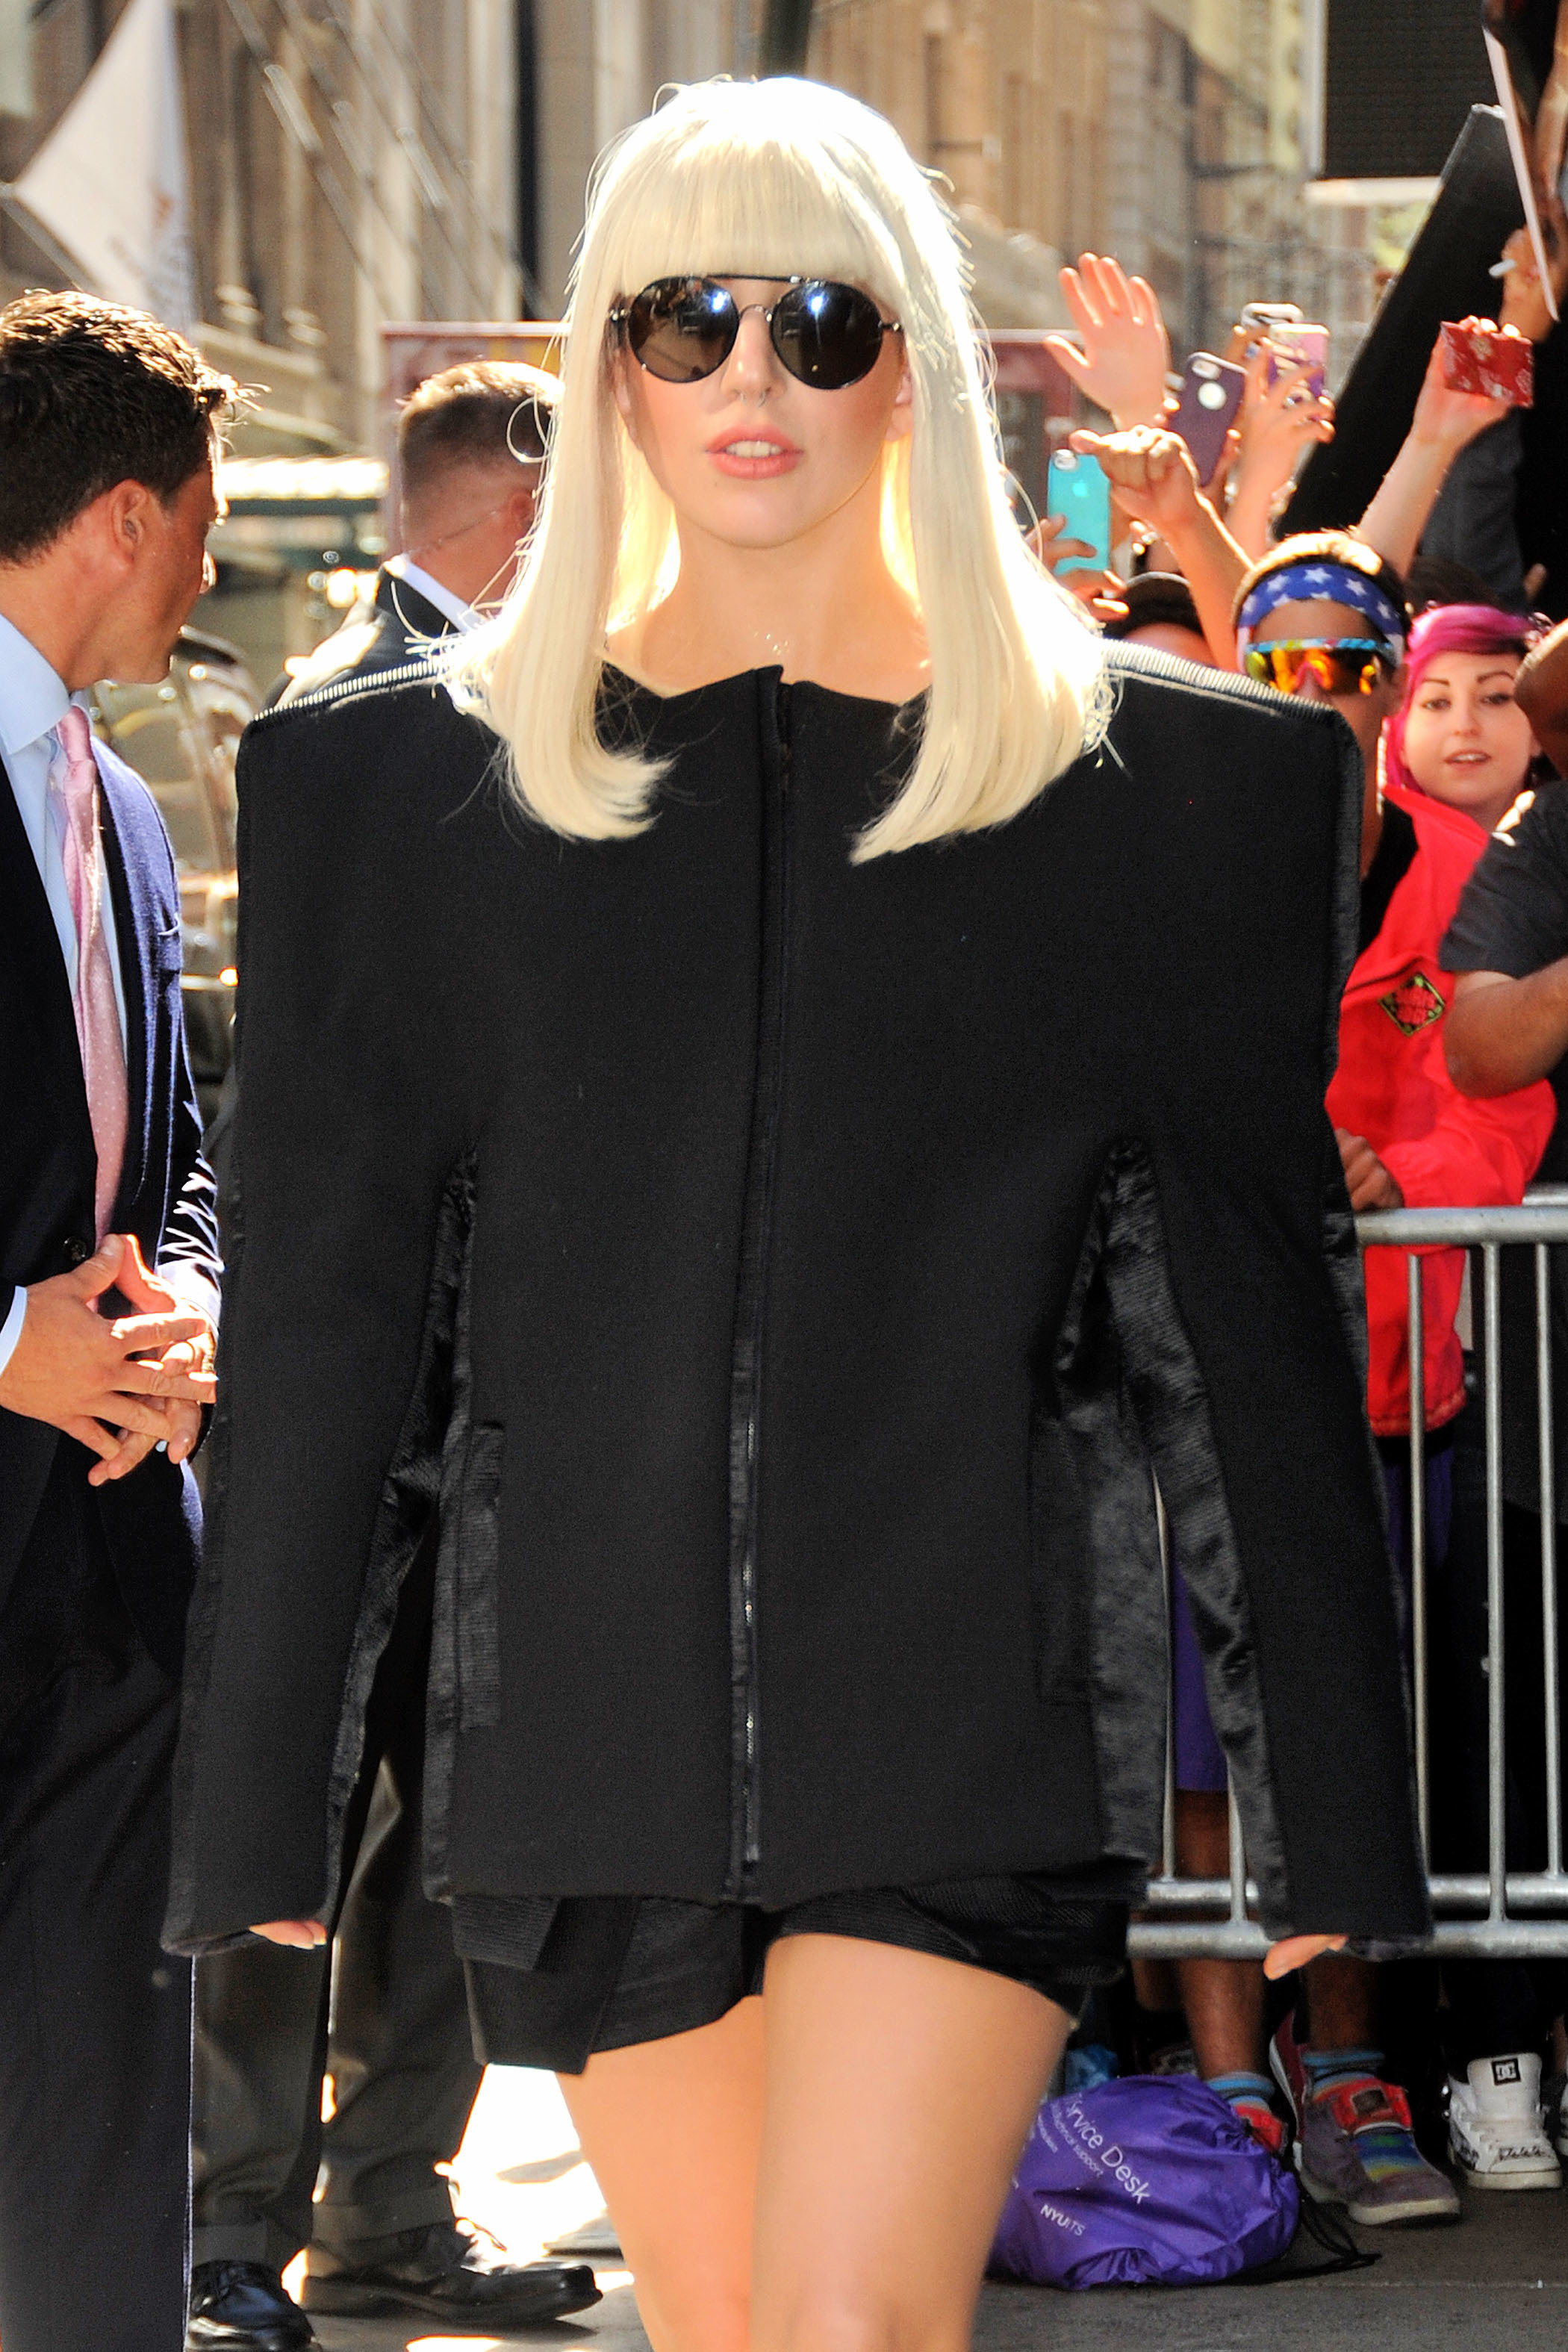 lady gaga instragram letter concern drug use